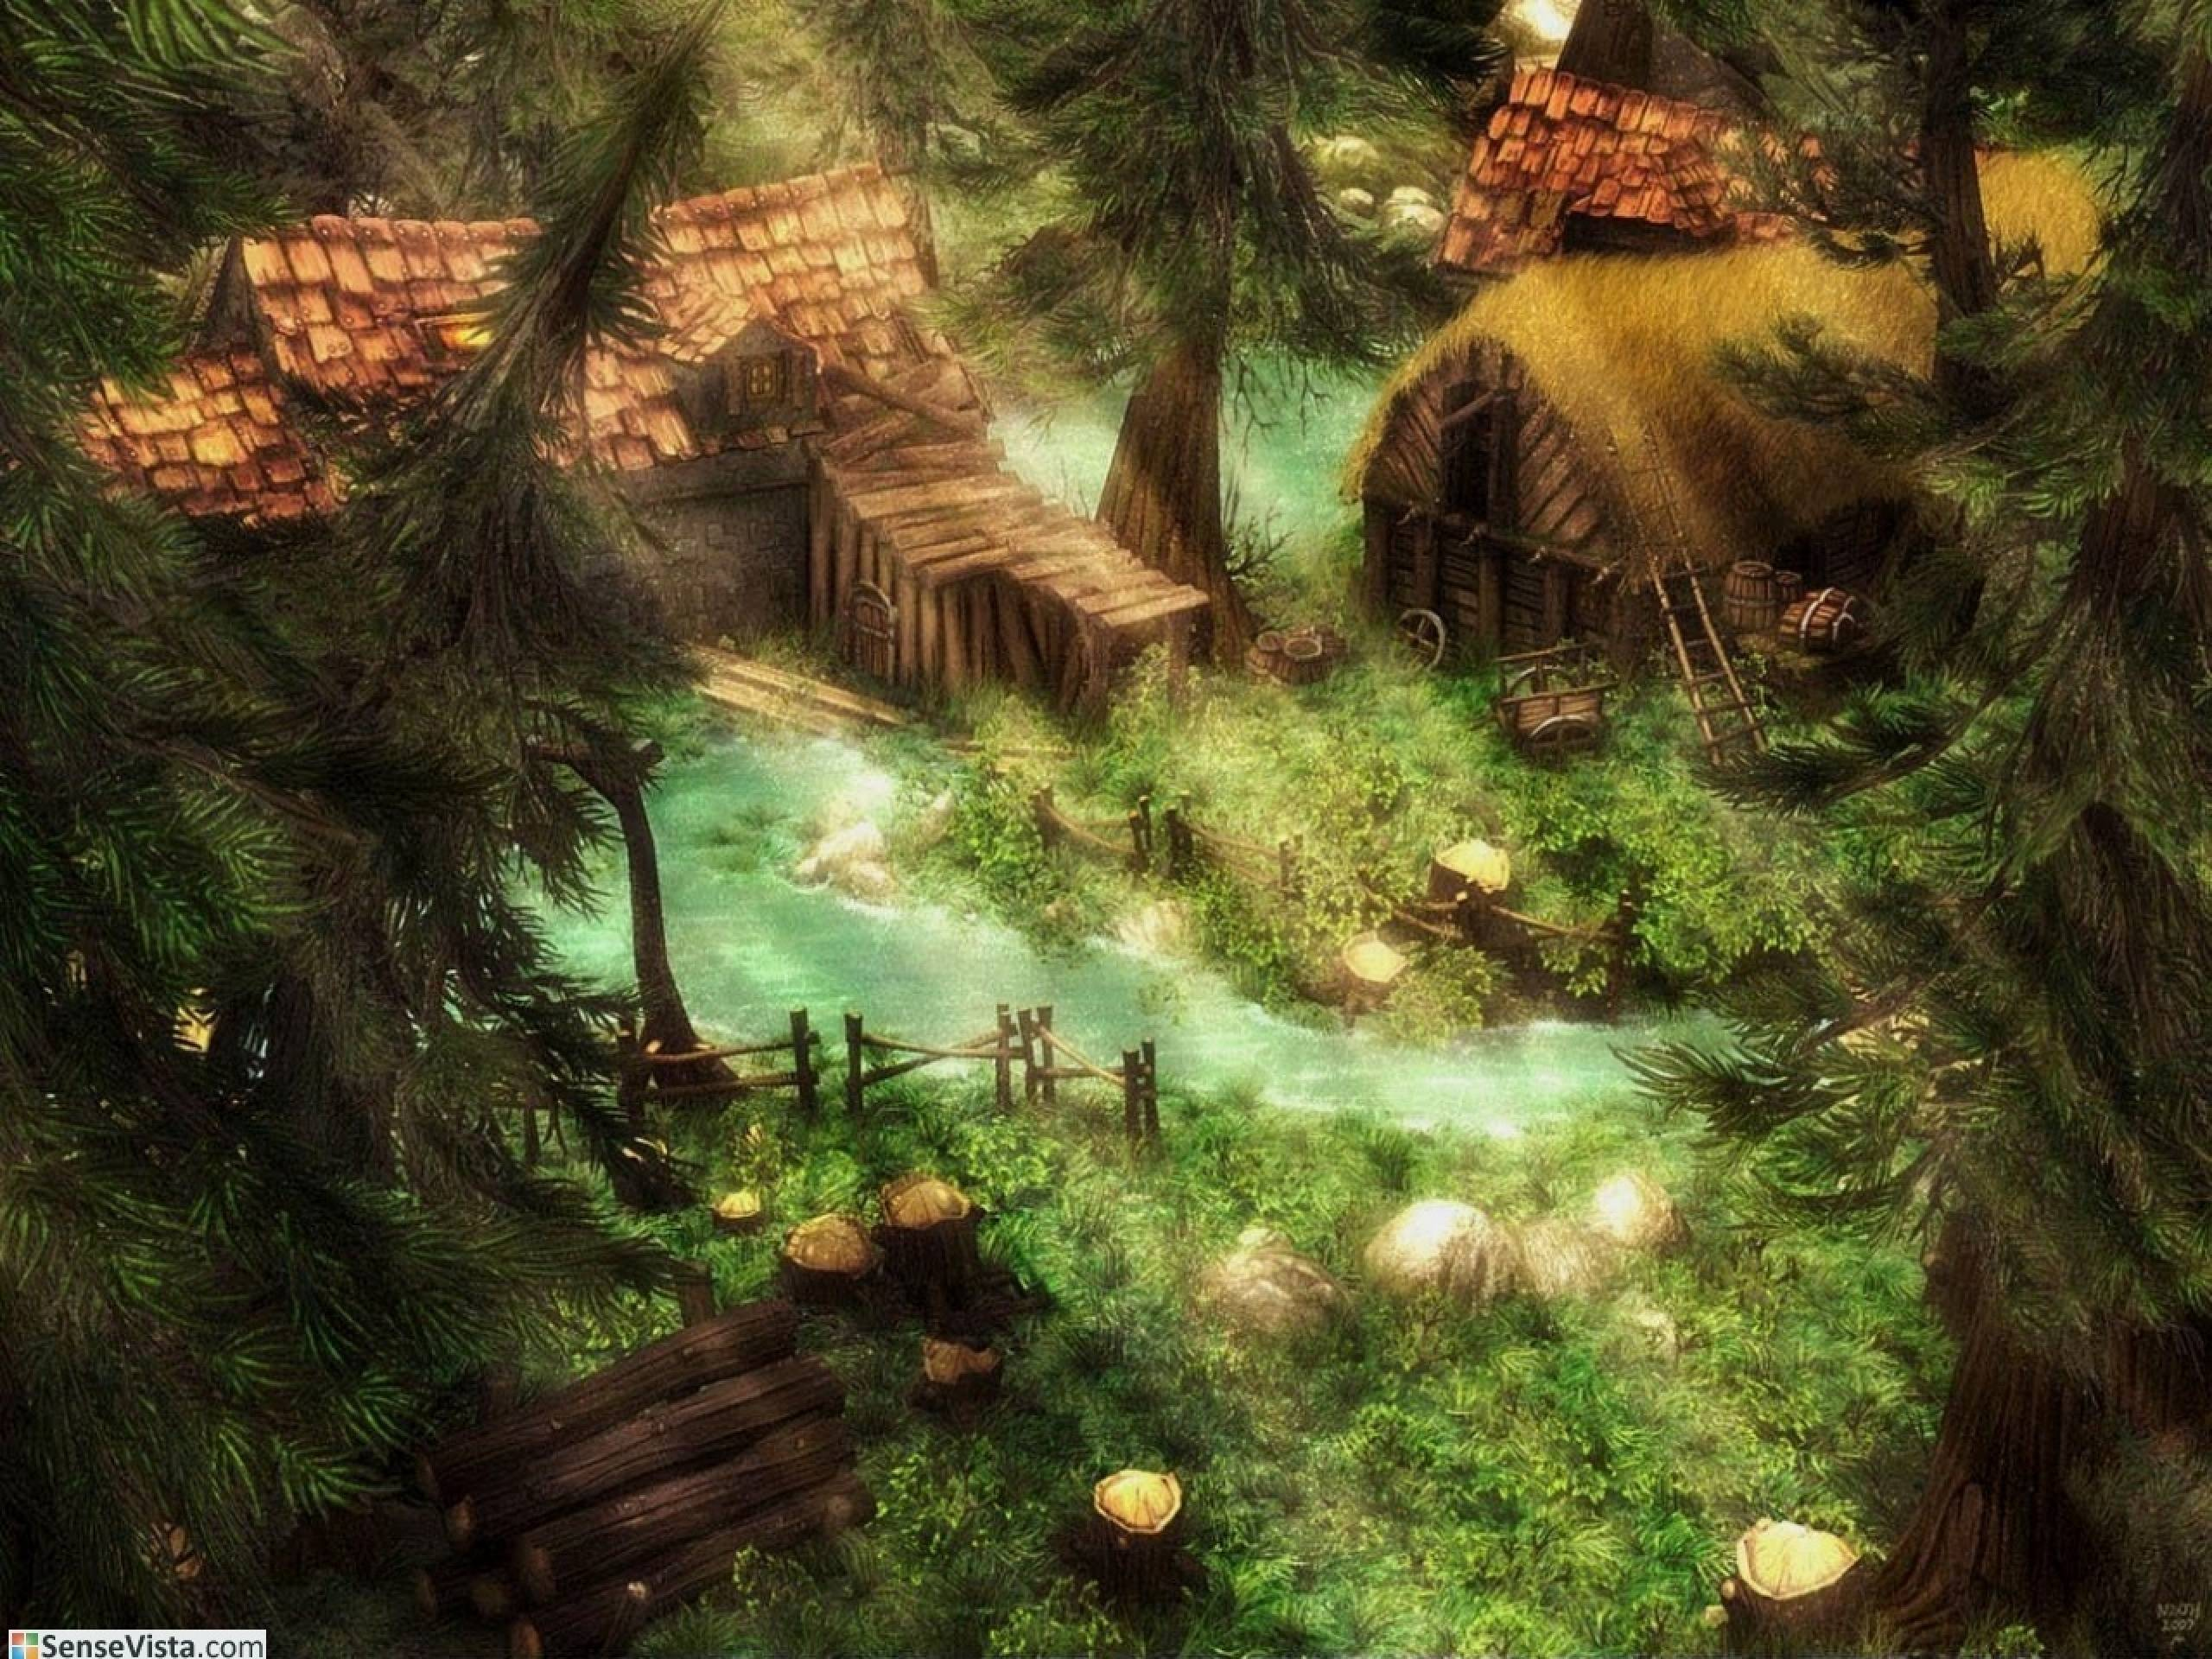 Creative Detailed Hd Fantasy Wallpapers: Fantasy Nature Wallpapers